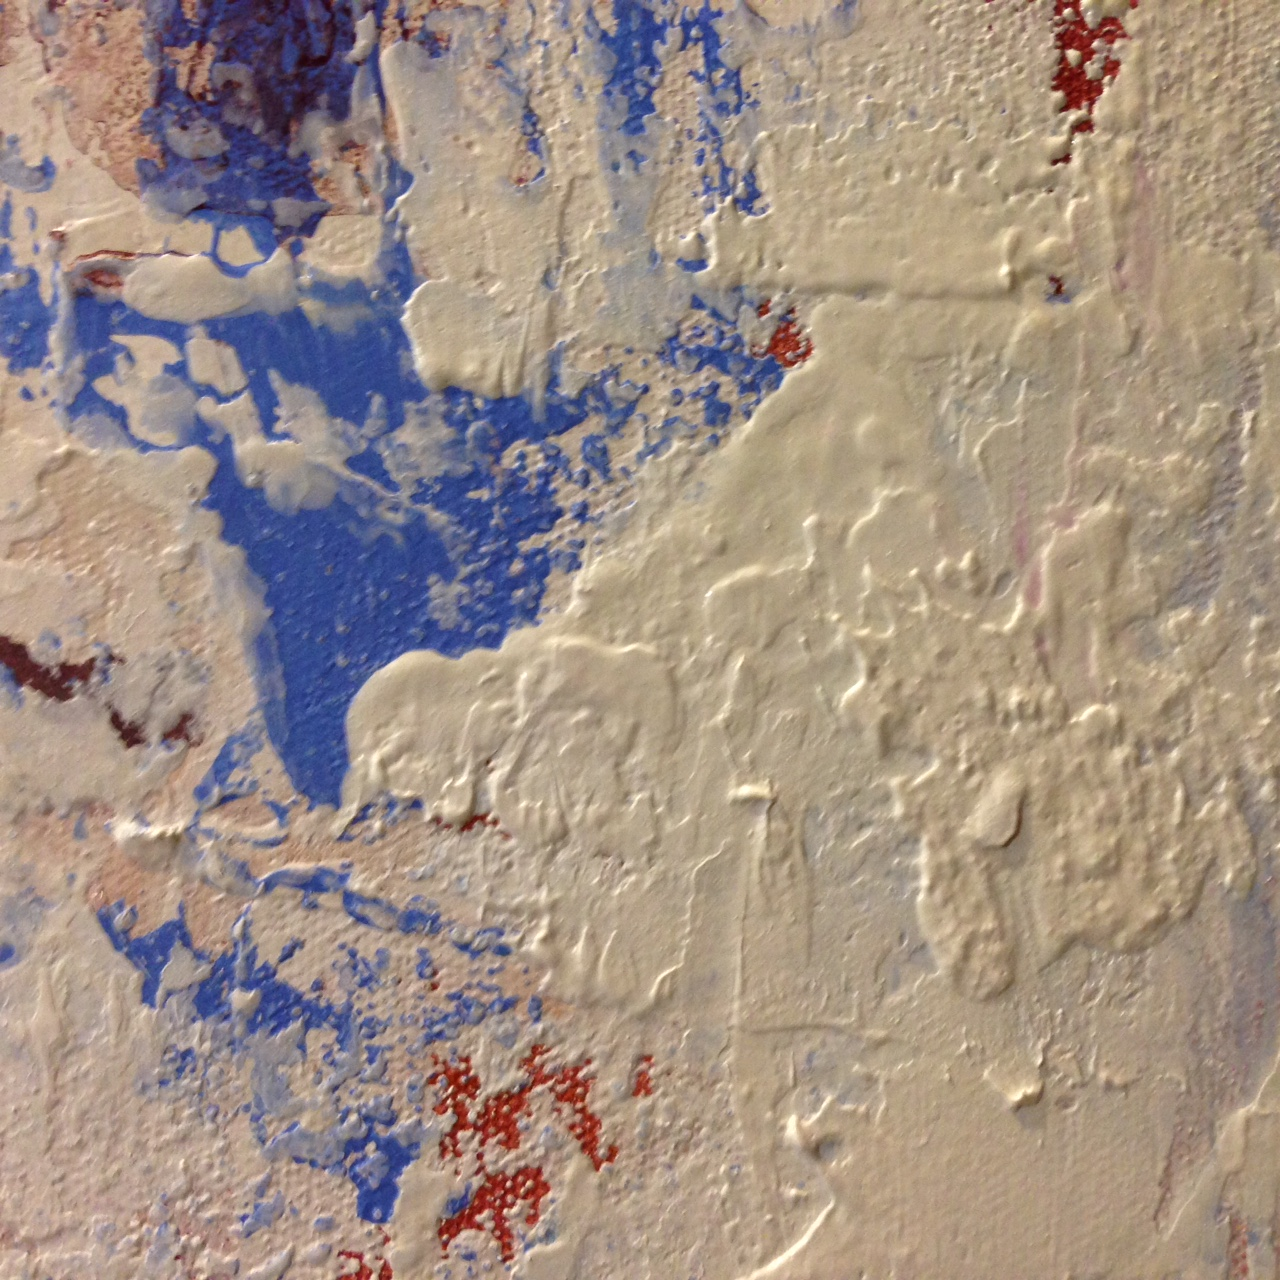 Detail of texture and overpainting.